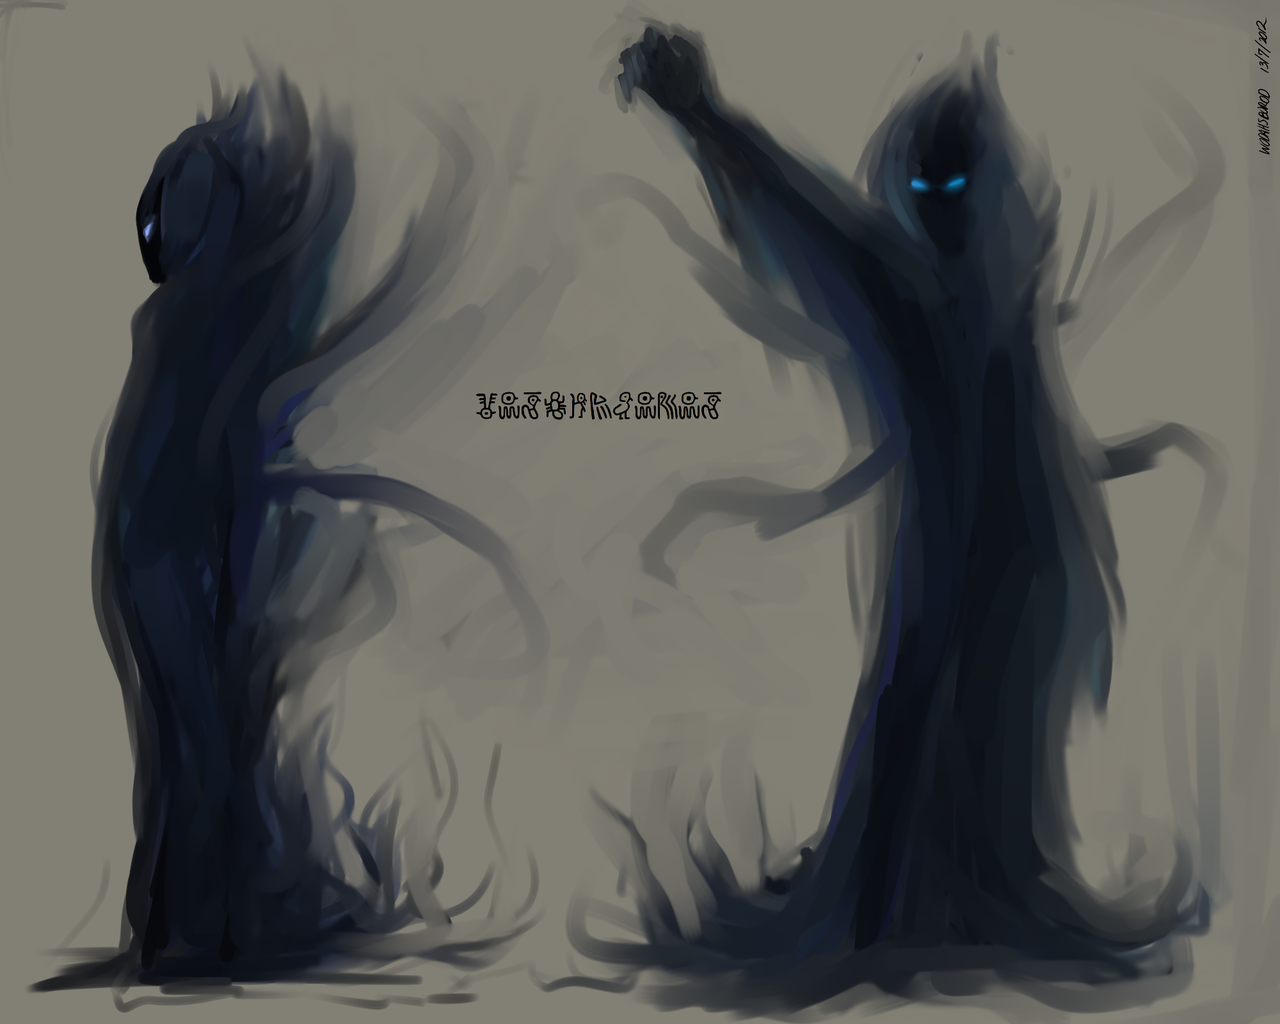 thistinglesmyinterest:  SETTORU: Wodahsborod Wodahsborod is a mysterious, dark entity that has spirited Settoru out of his old home, only to continue pursuing him. It is unknown what it wants with Settoru but it has been growing desperate lately with its attempts of capturing him.  Settoru is a fan project set 100+ years into the future of Shadow of the Colossus.